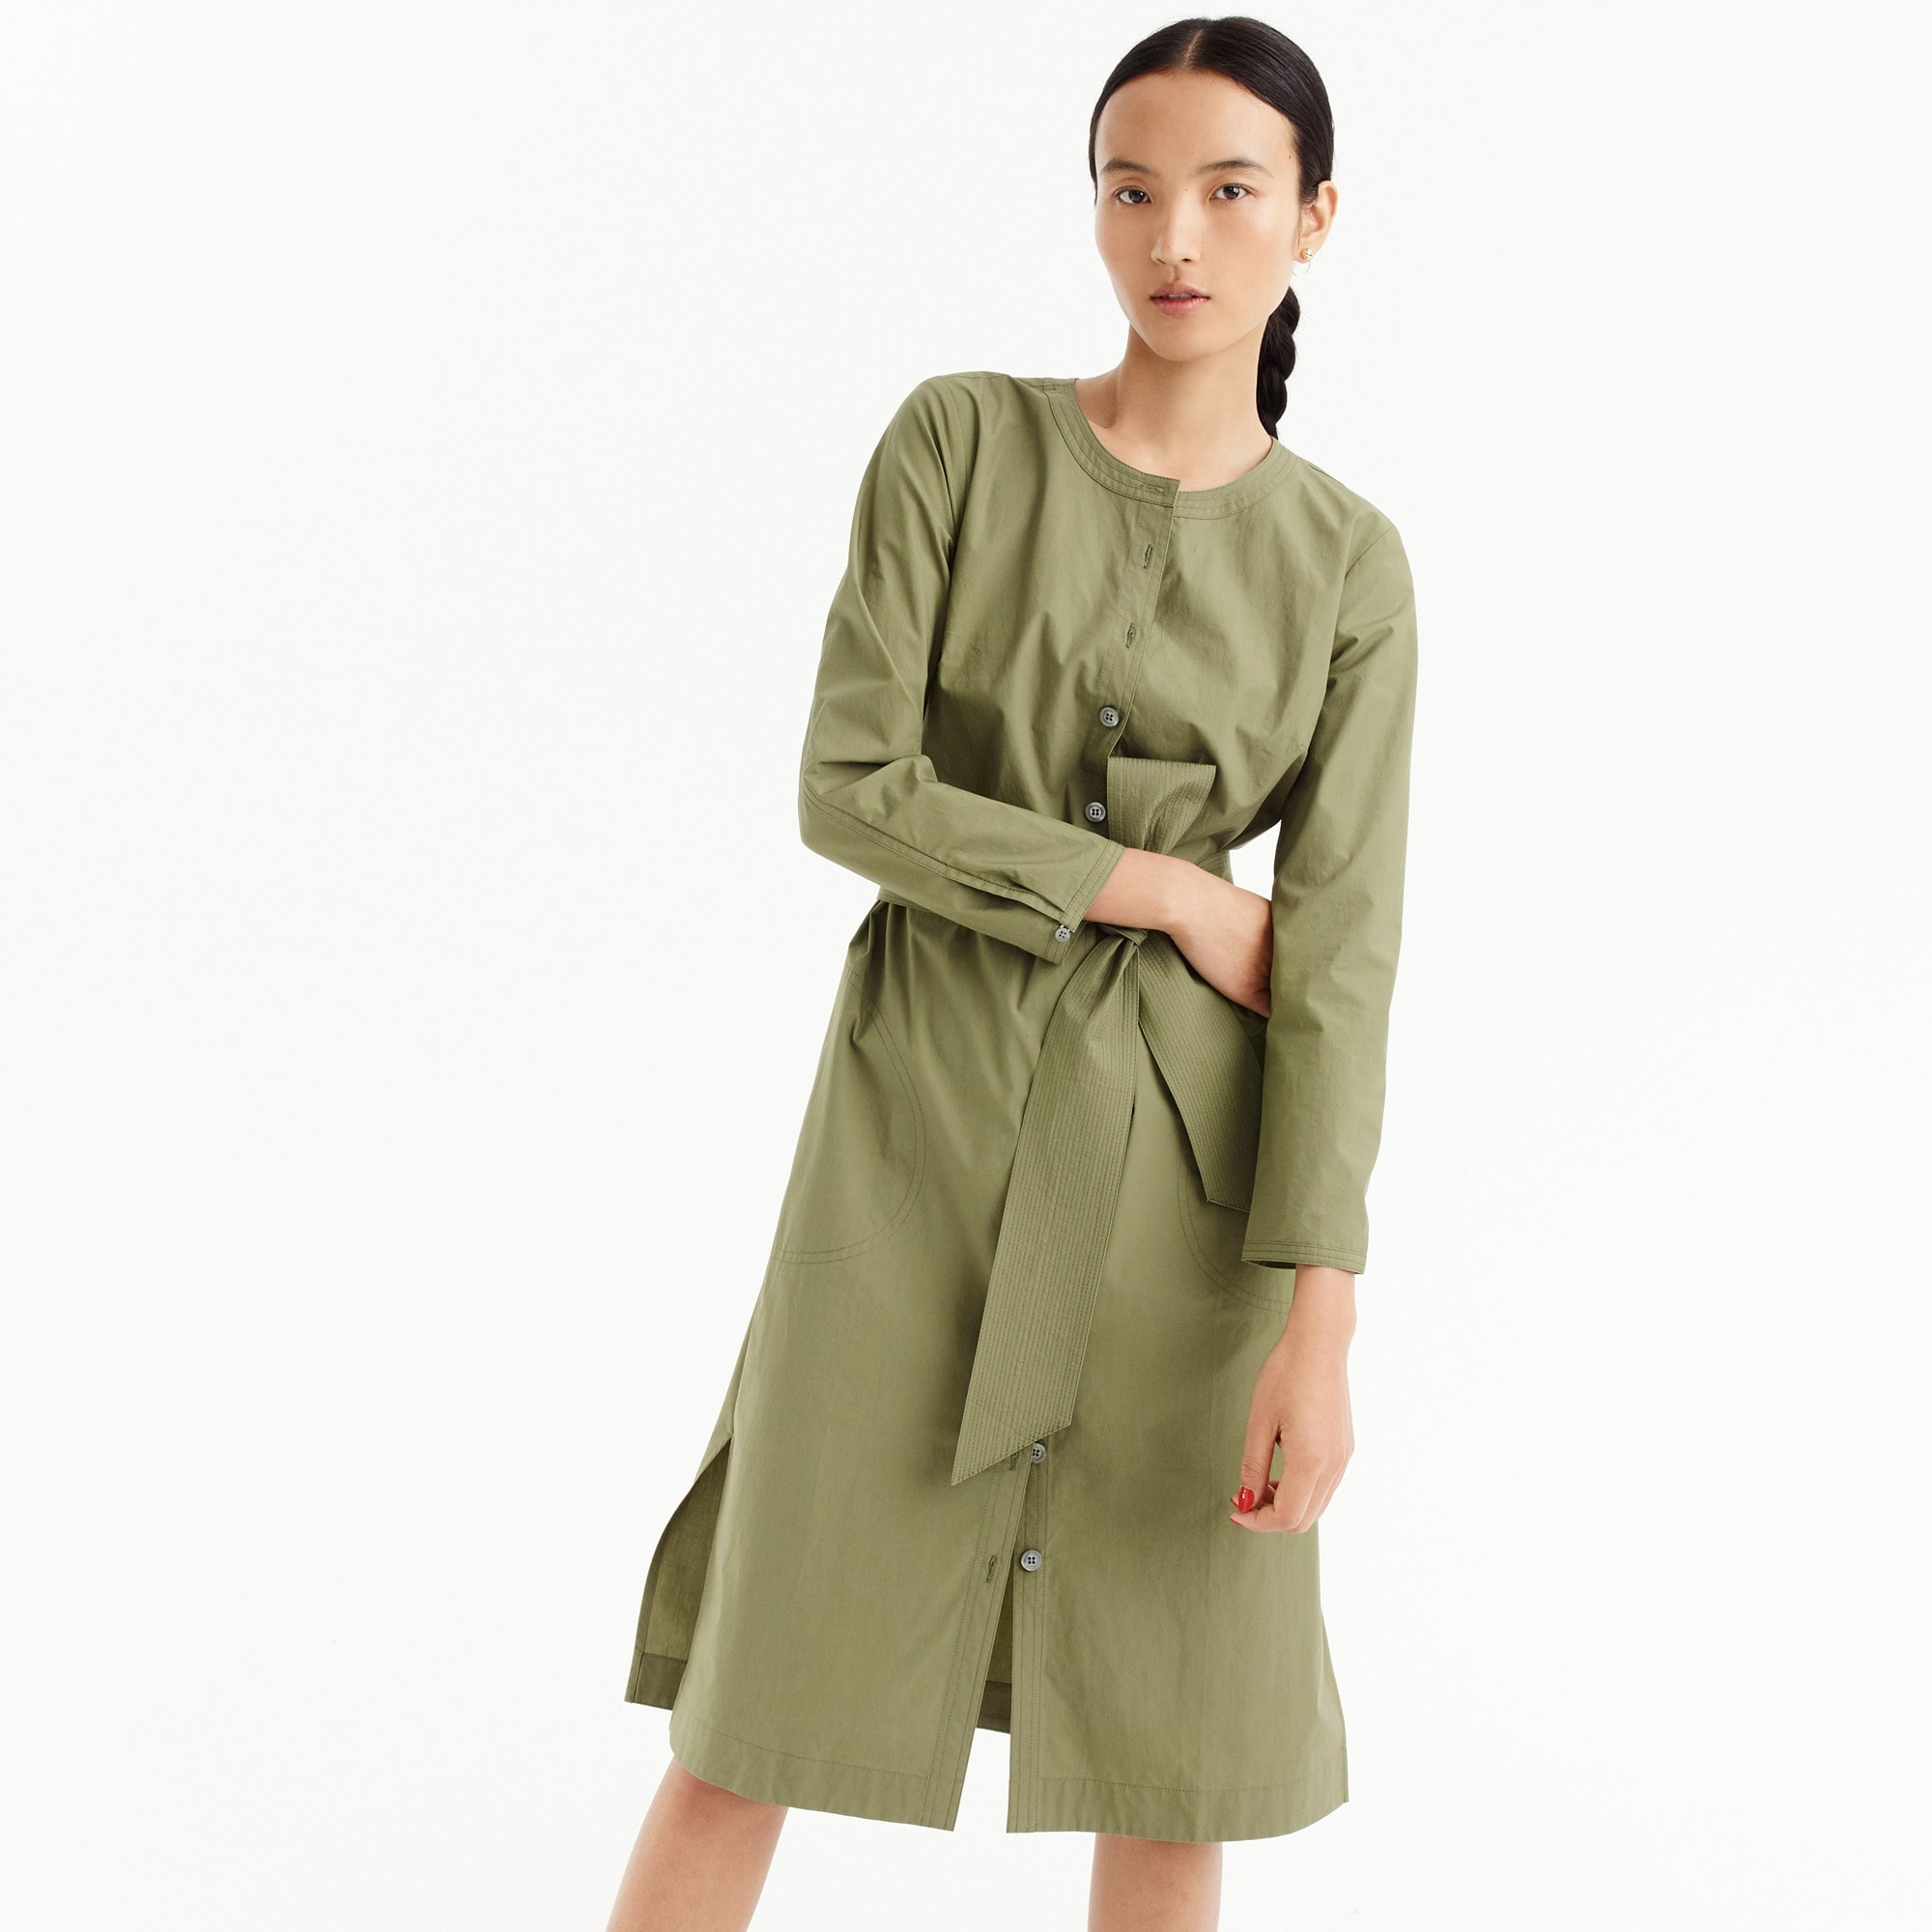 Petite long-sleeve shirtdress women dresses c